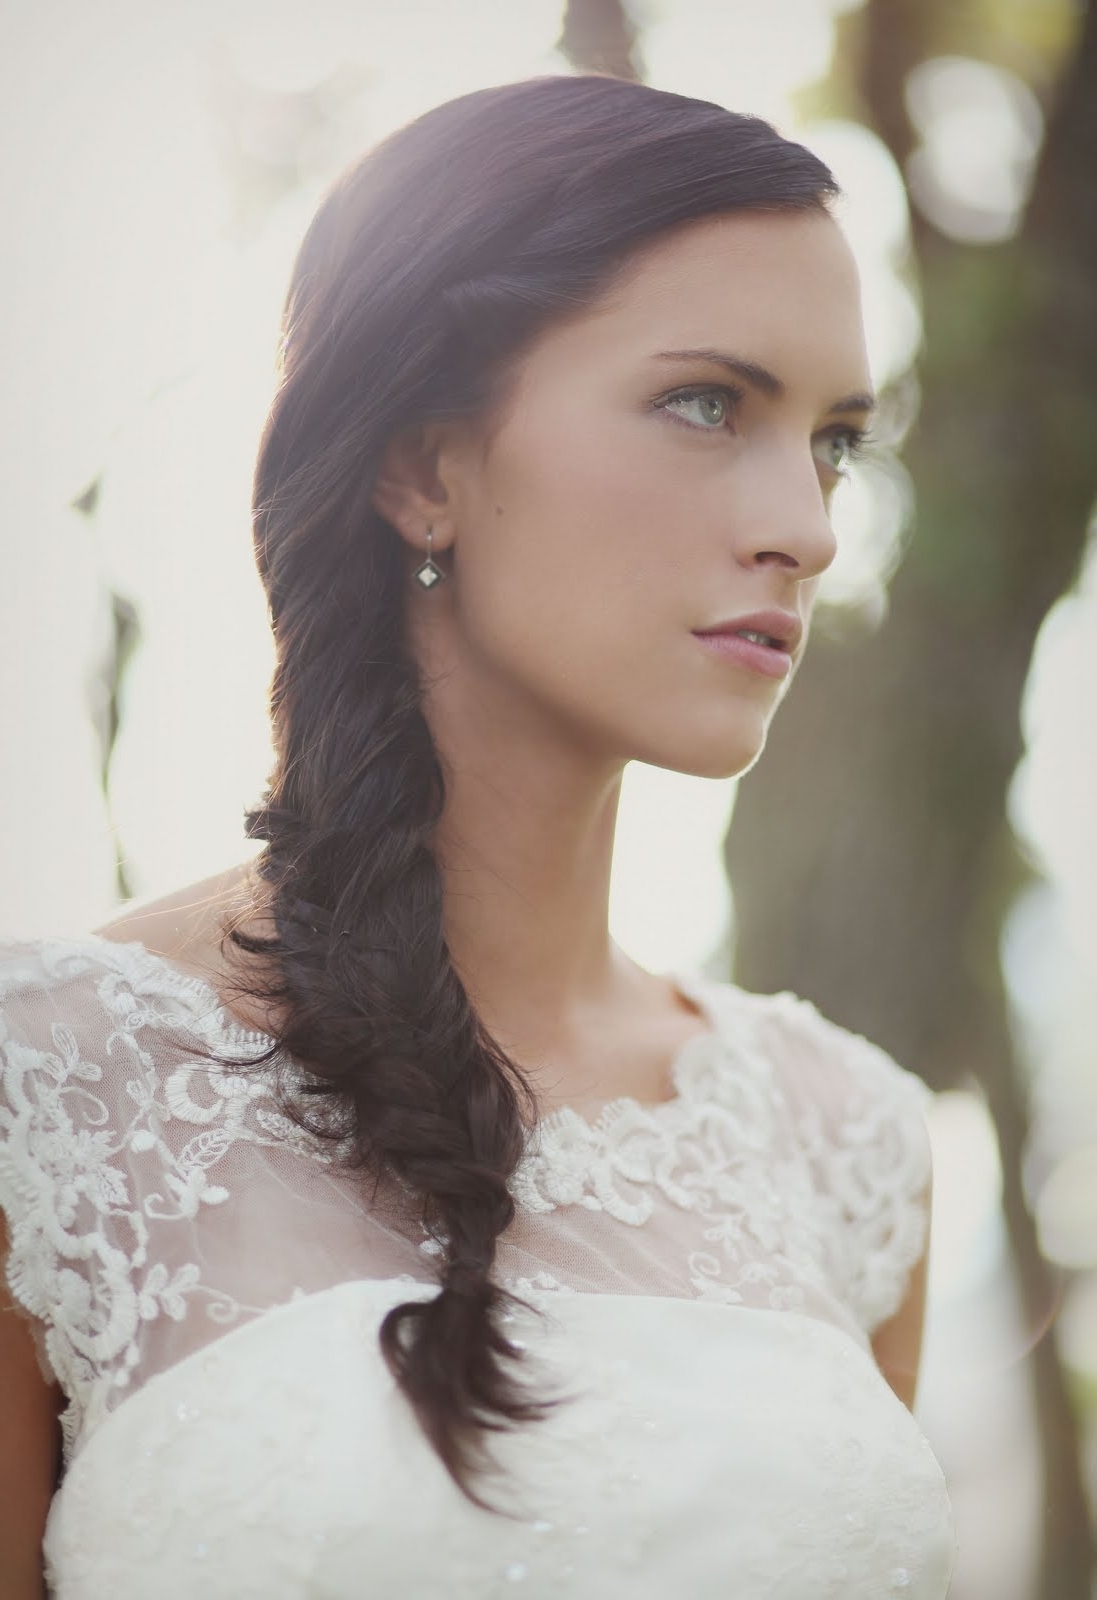 Widely Used Wedding Hairstyles Down For Thin Hair Pertaining To 10 Bridal Hairstyle Ideas For Fine Hair – Hair World Magazine (View 8 of 15)